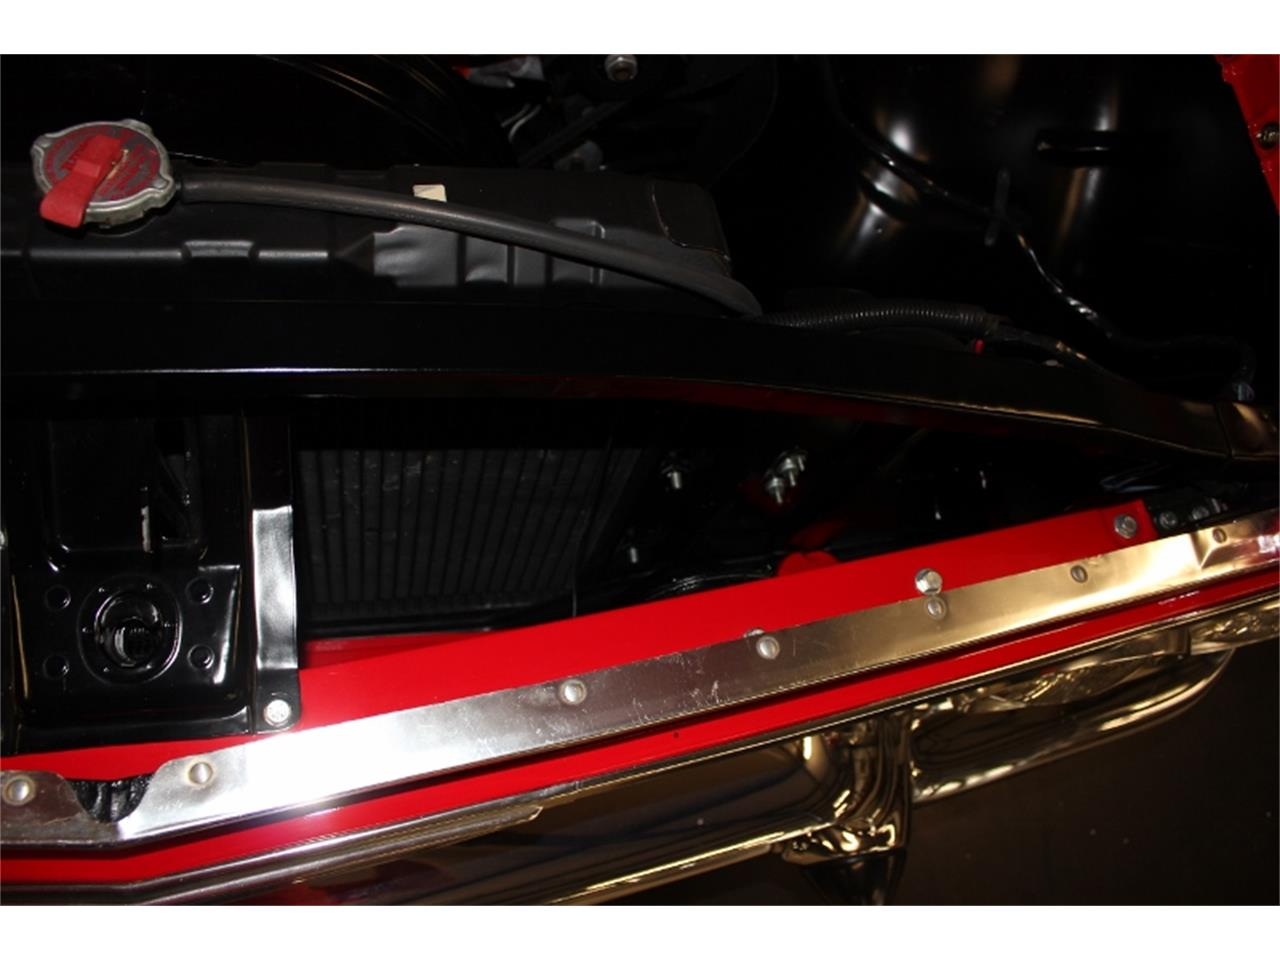 Large Picture of Classic 1961 Chevrolet Impala located in North Carolina - $58,000.00 - J60W